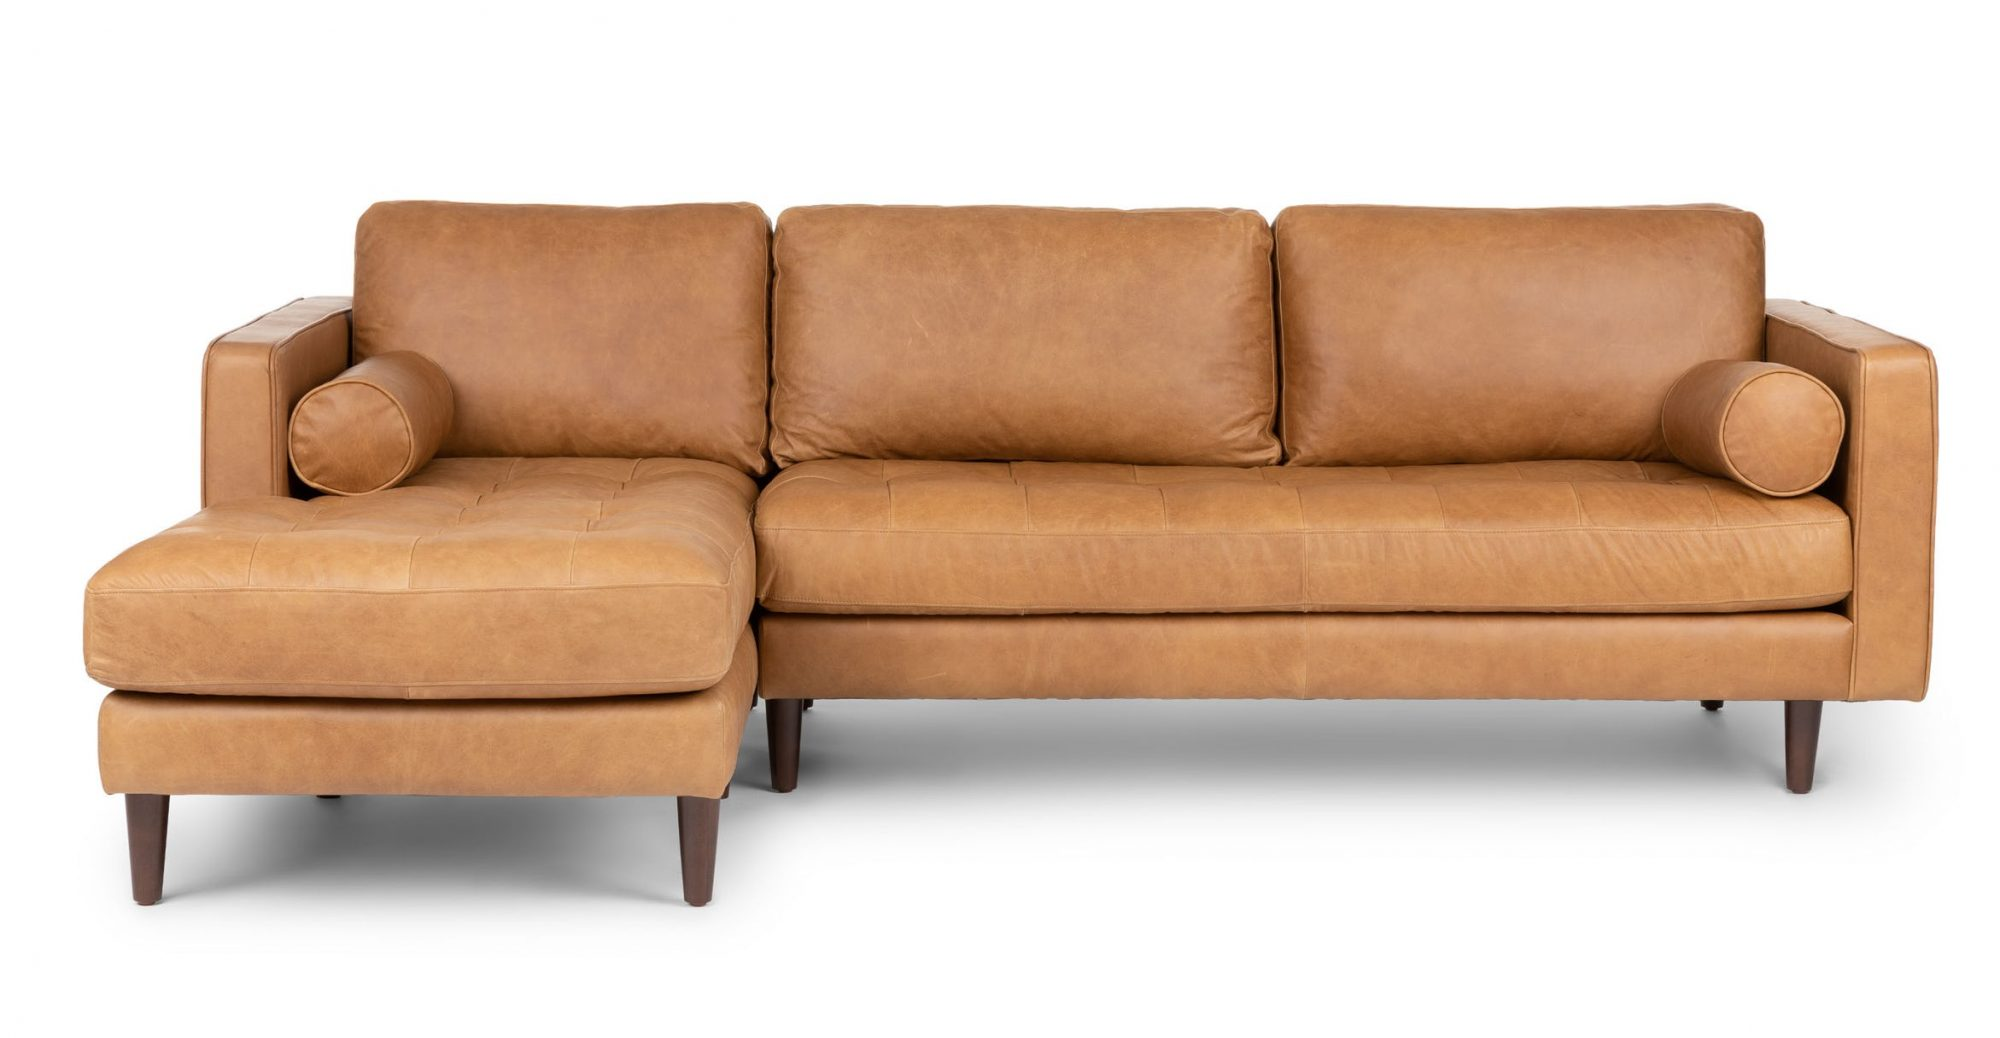 Sven leather sectional